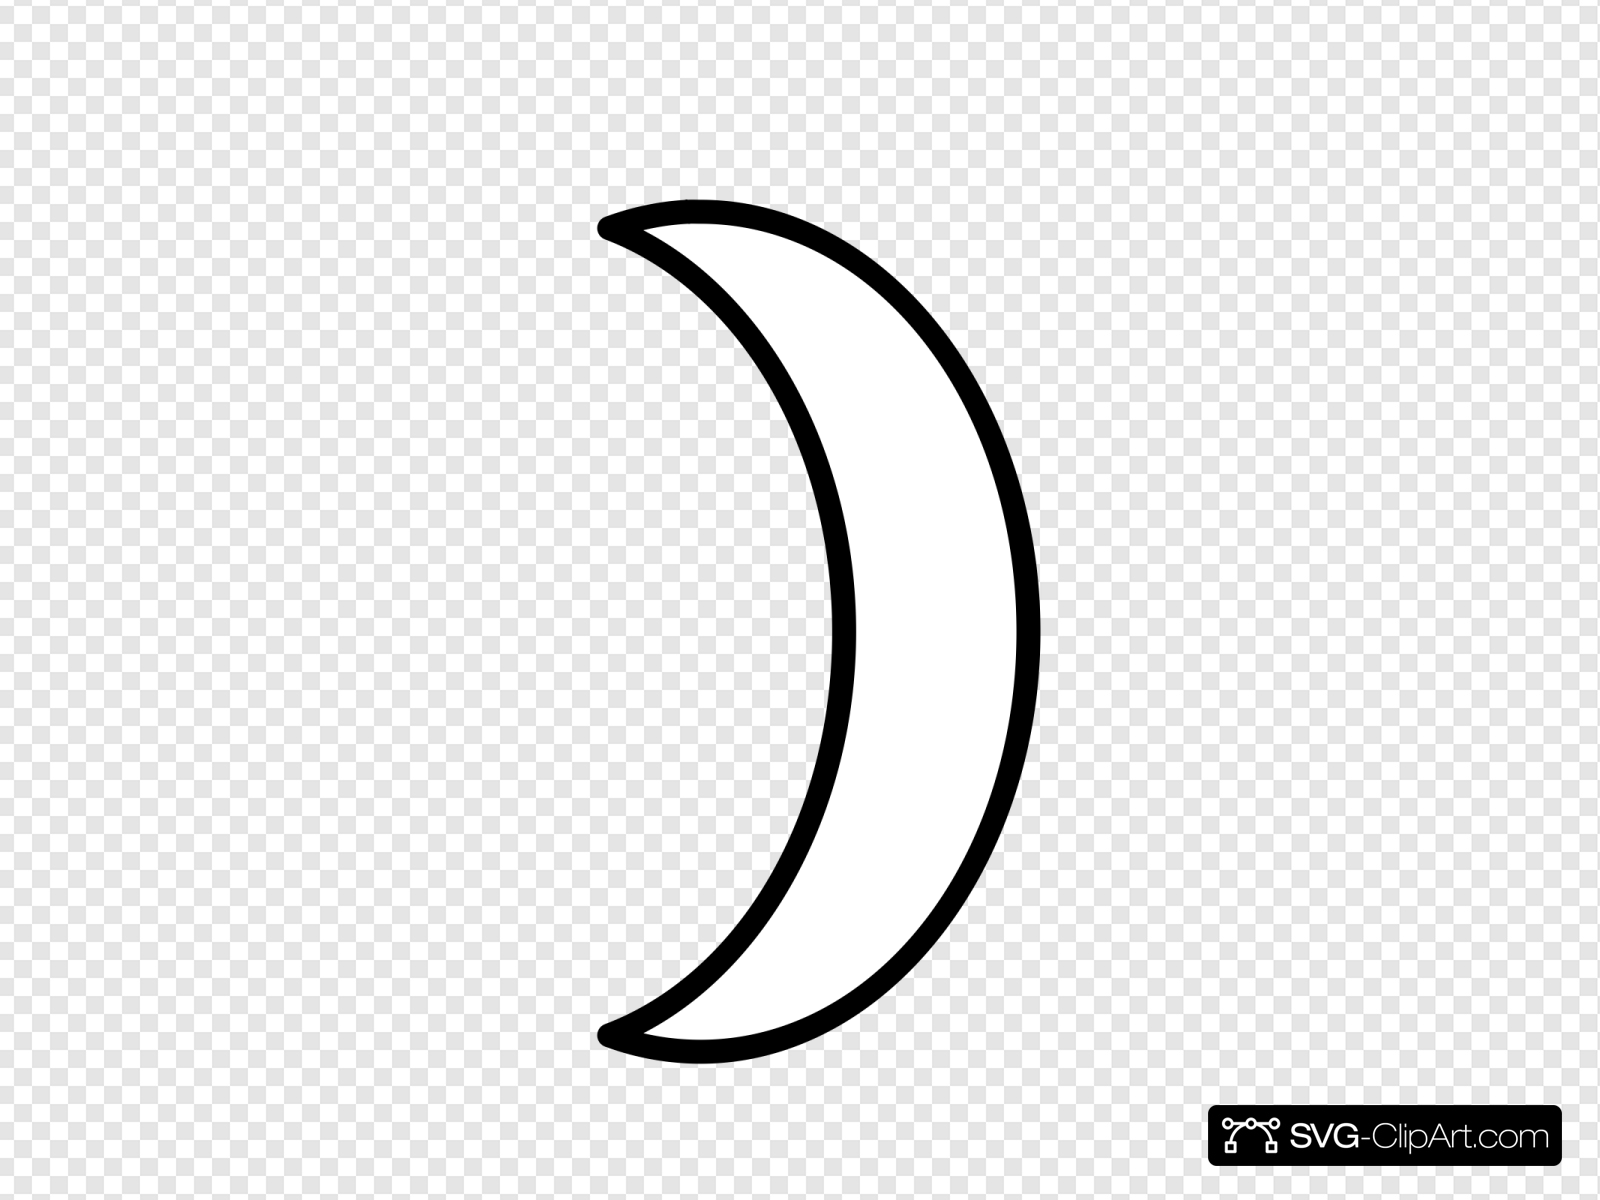 Crescents clipart image library stock Crescent Clip art, Icon and SVG - SVG Clipart image library stock